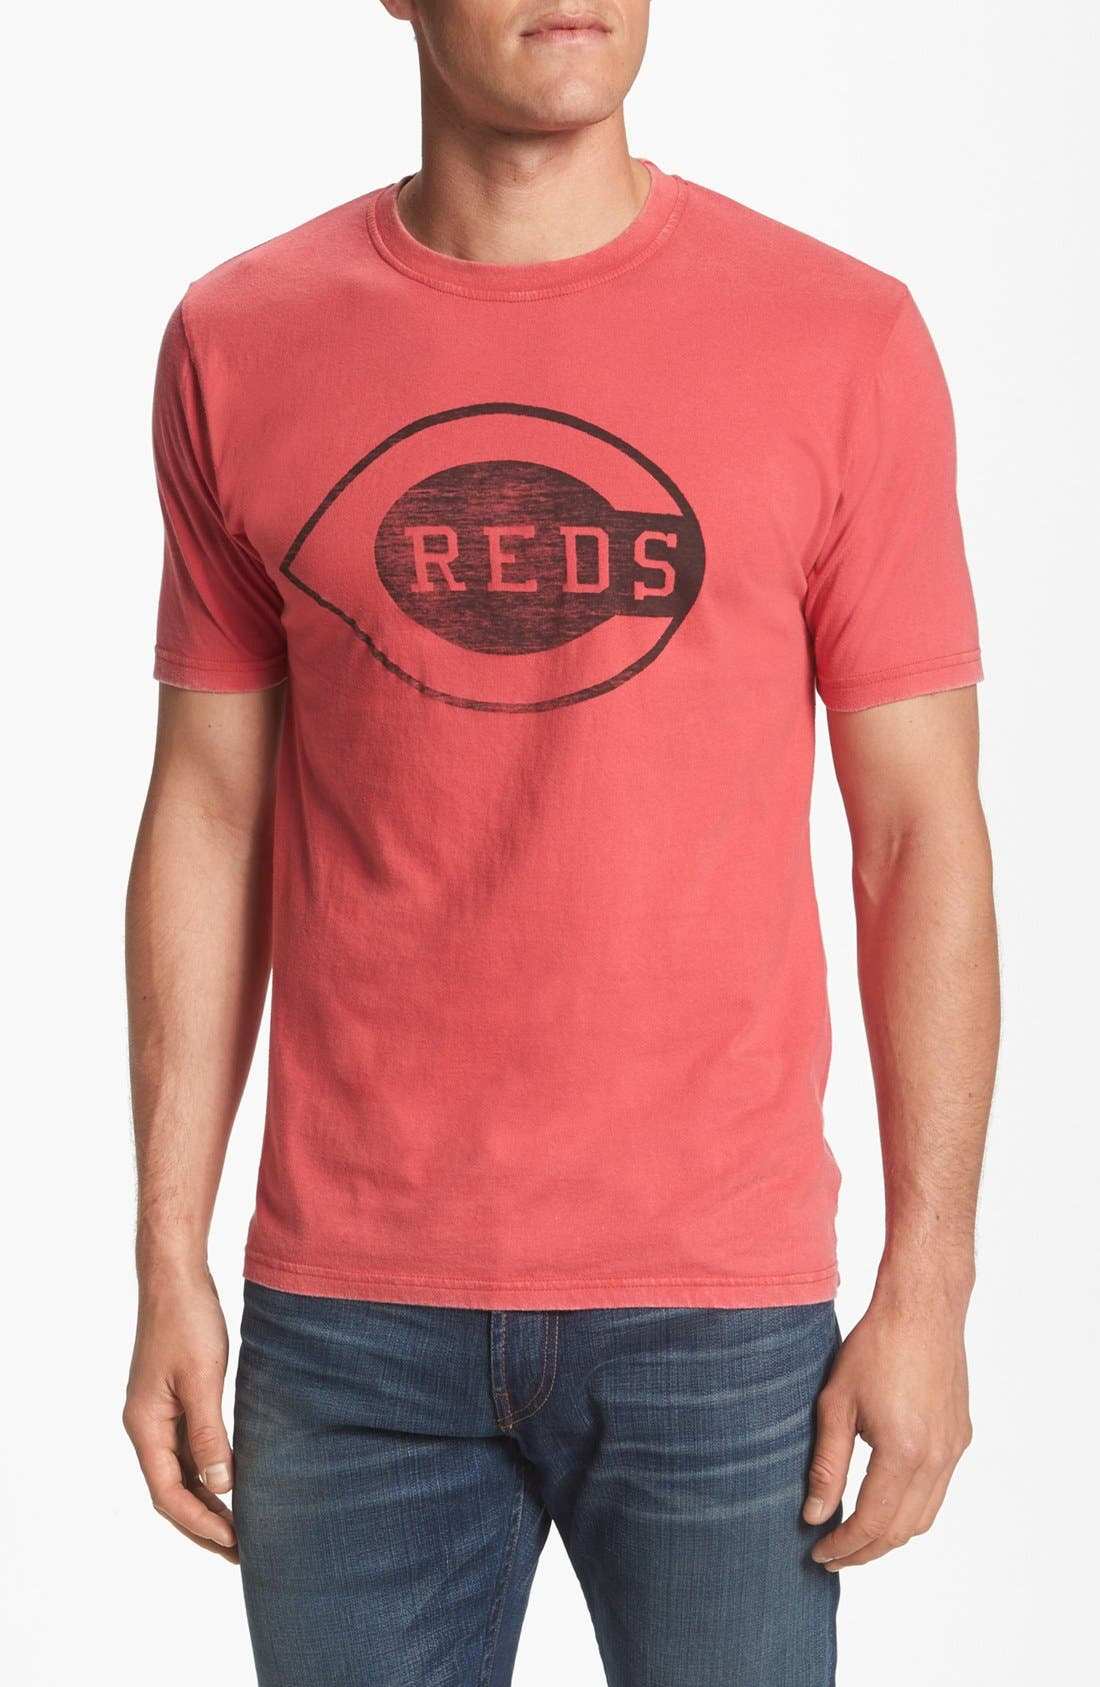 Alternate Image 1 Selected - Red Jacket 'Reds - Reversal' T-Shirt